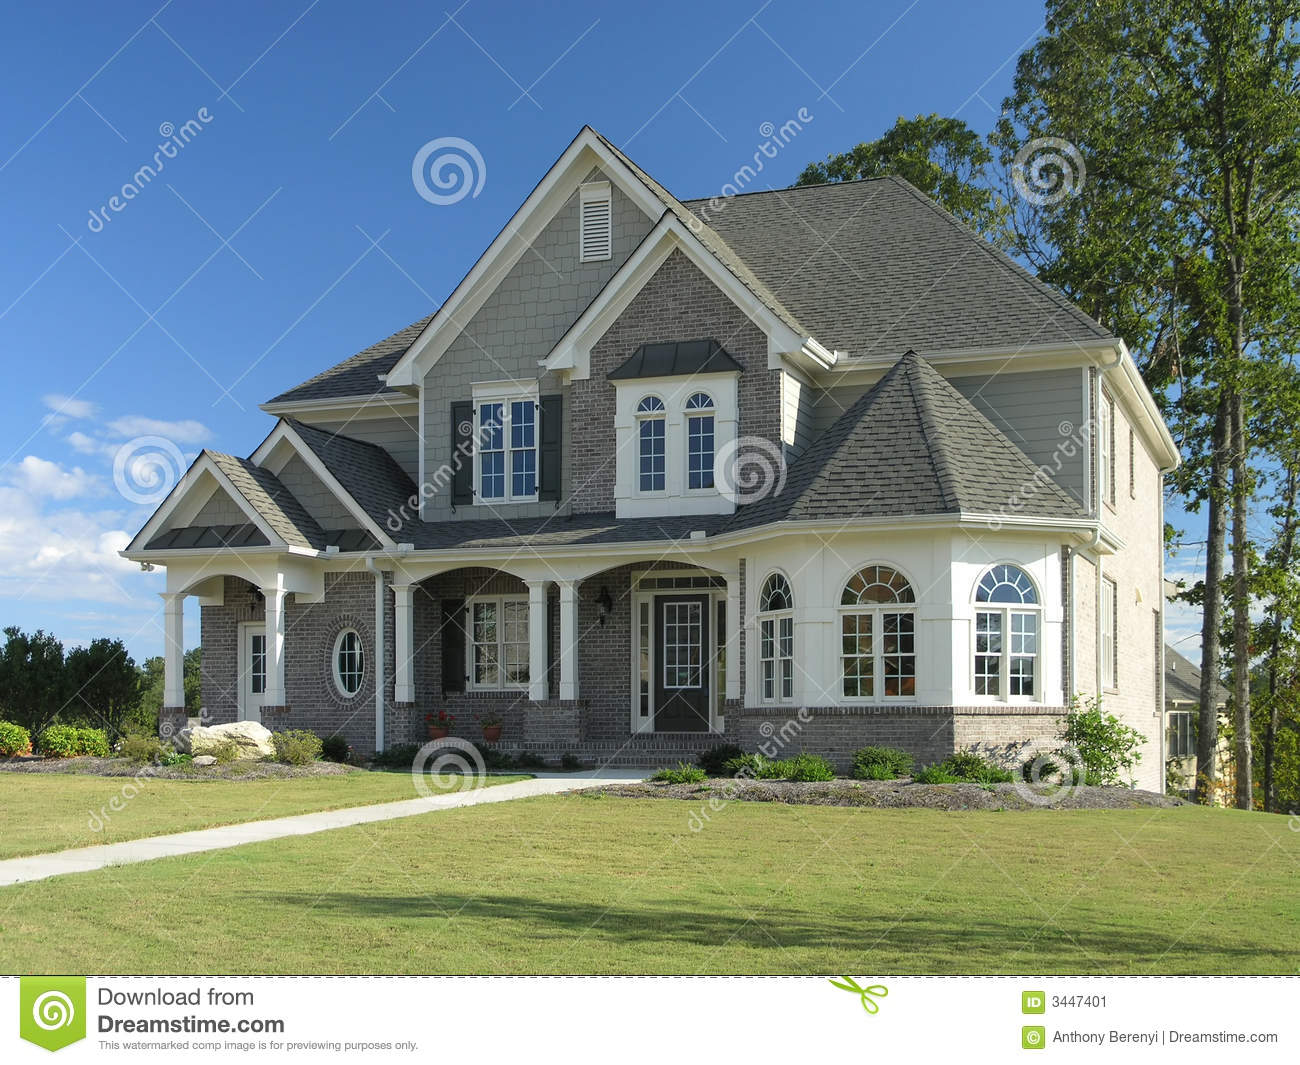 Luxury home exterior 56 stock image image of fancy for Luxury home exterior